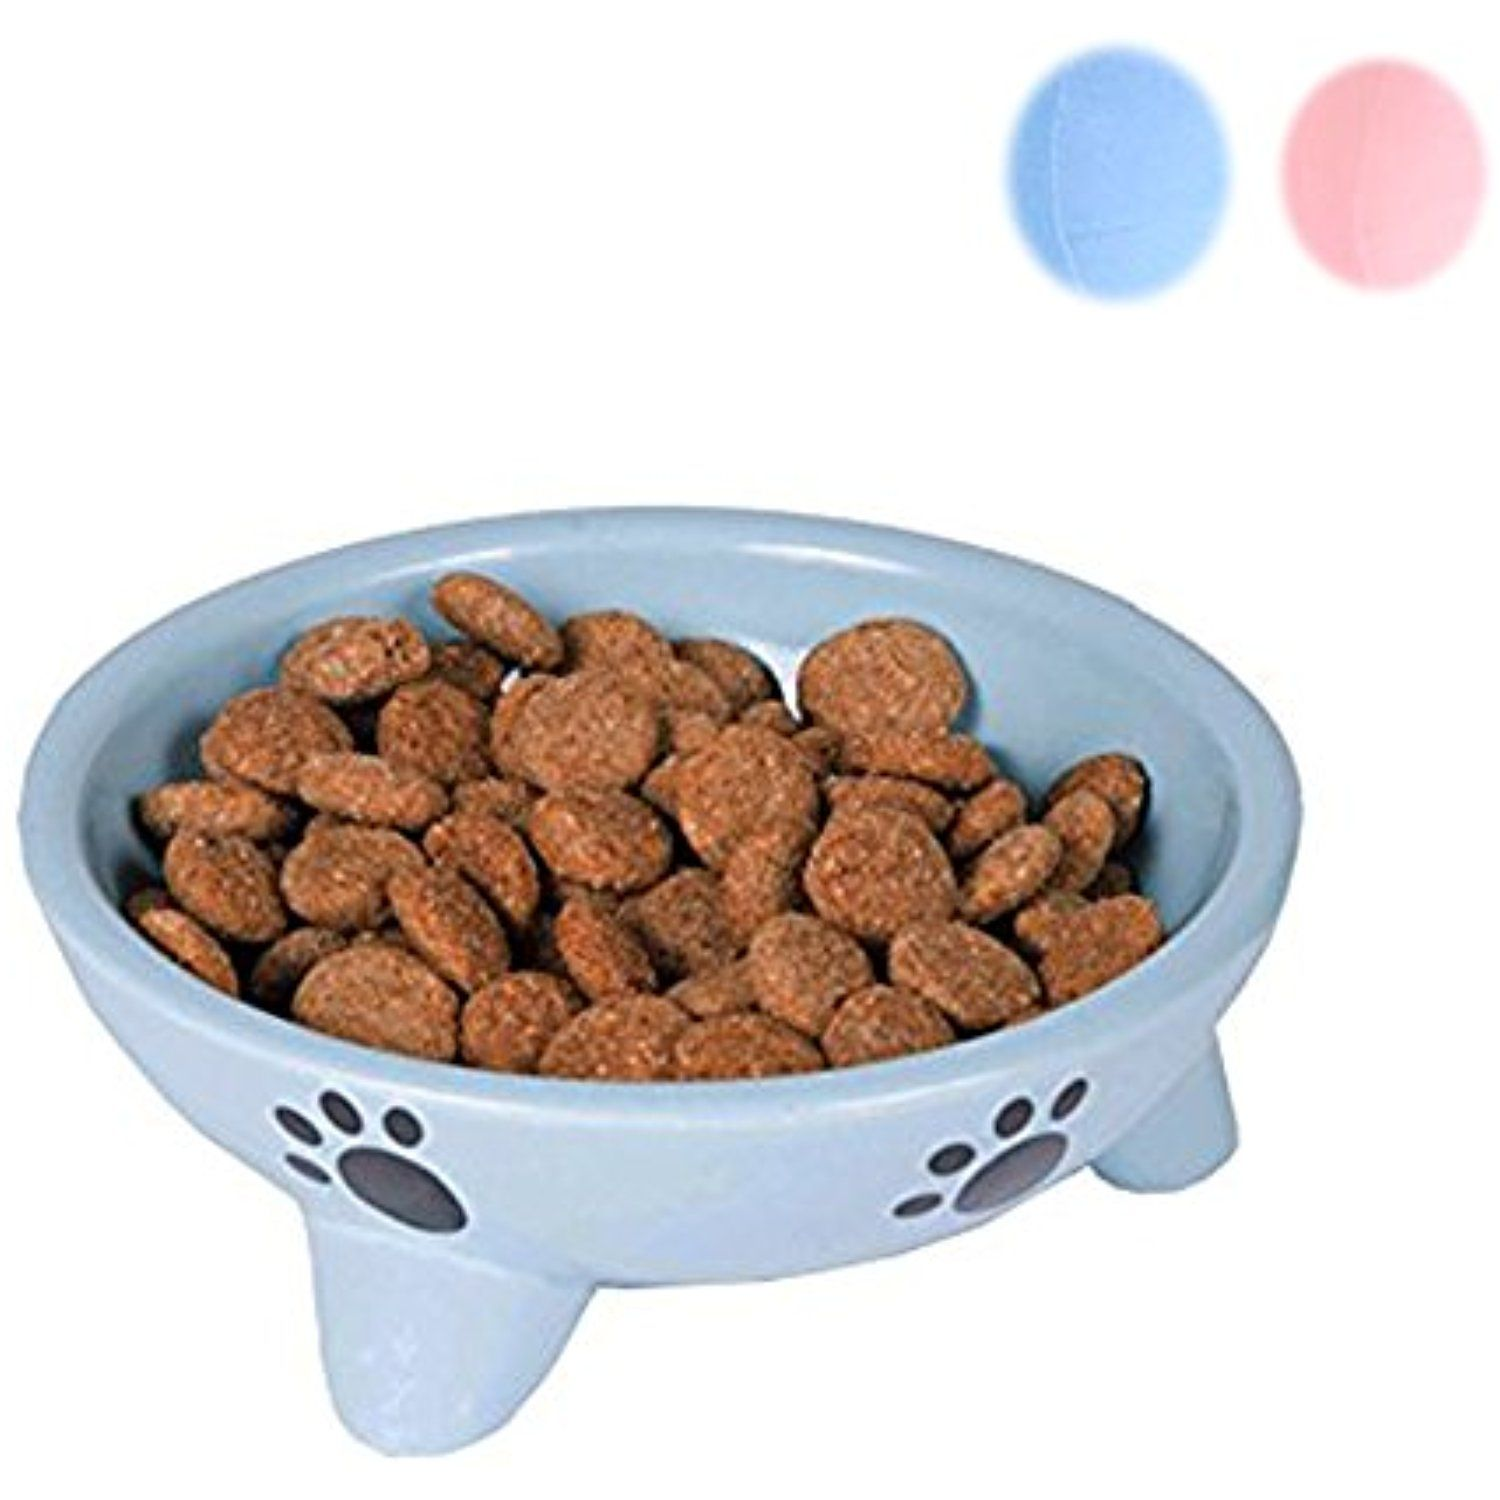 Dog Plates For Food And Water Ceramic Slow Food Bowl Dog Cat Food